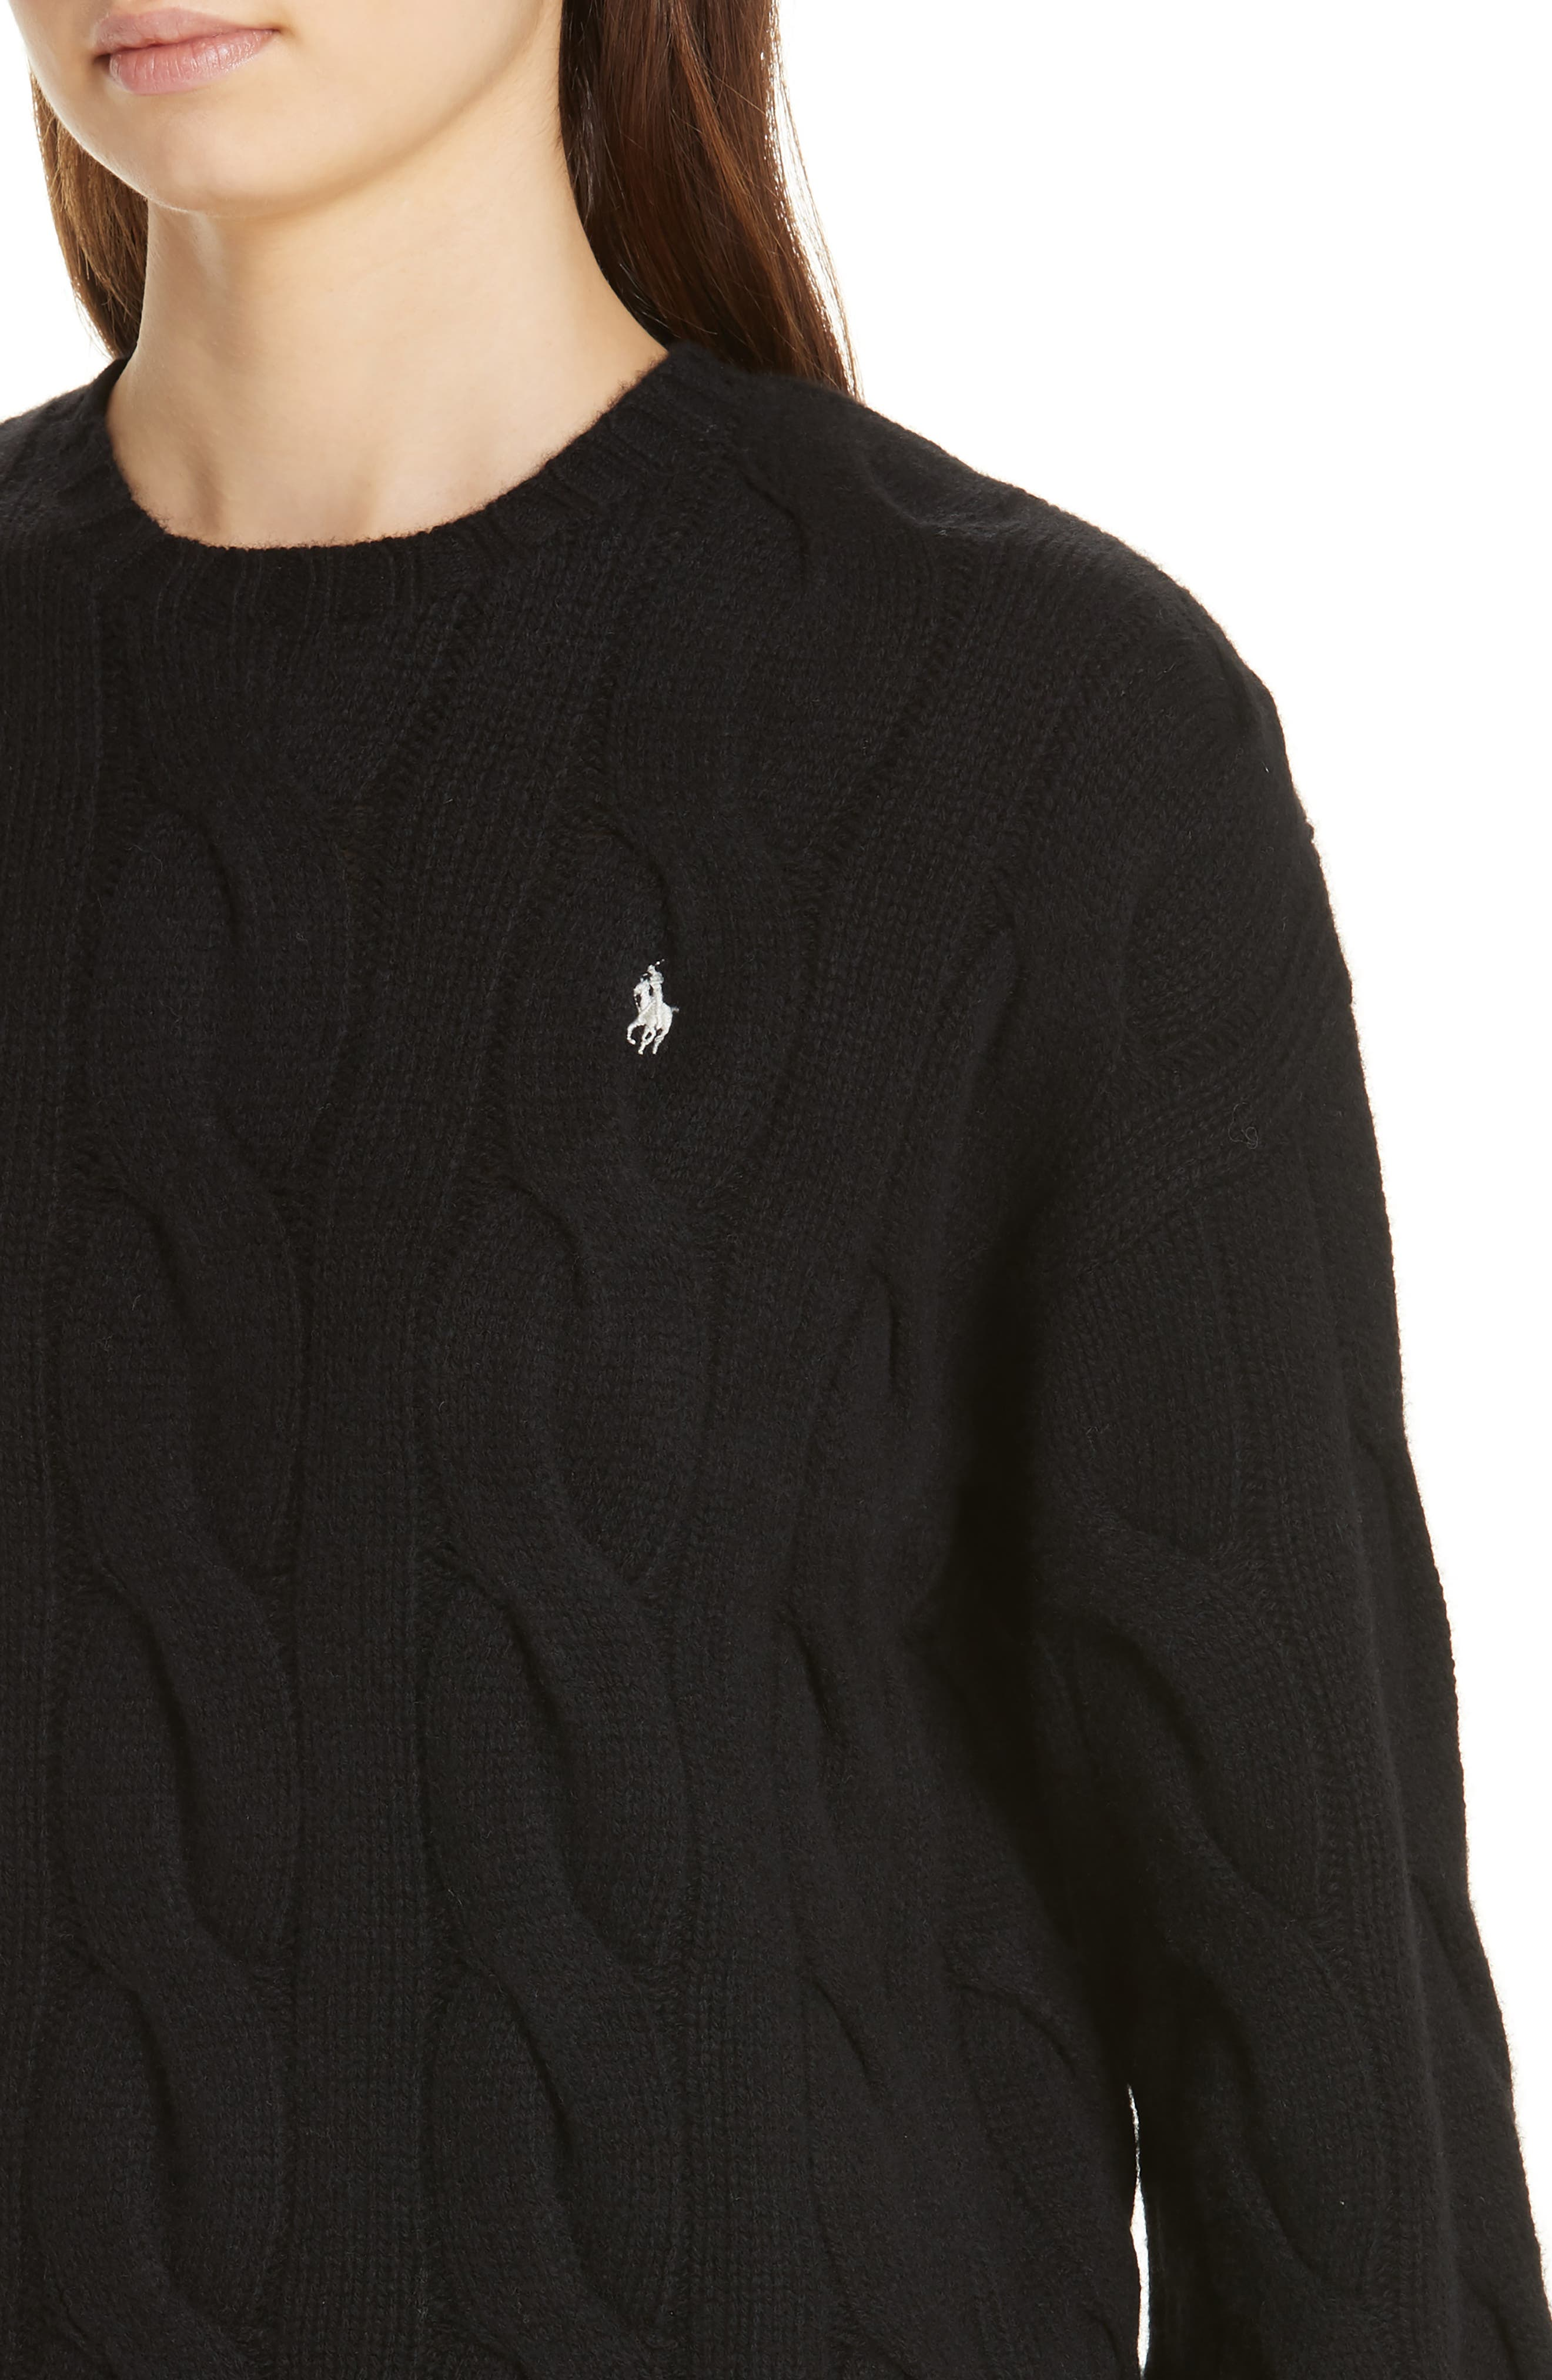 Dolman Sleeve Cable Knit Sweater,                             Alternate thumbnail 4, color,                             POLO BLACK